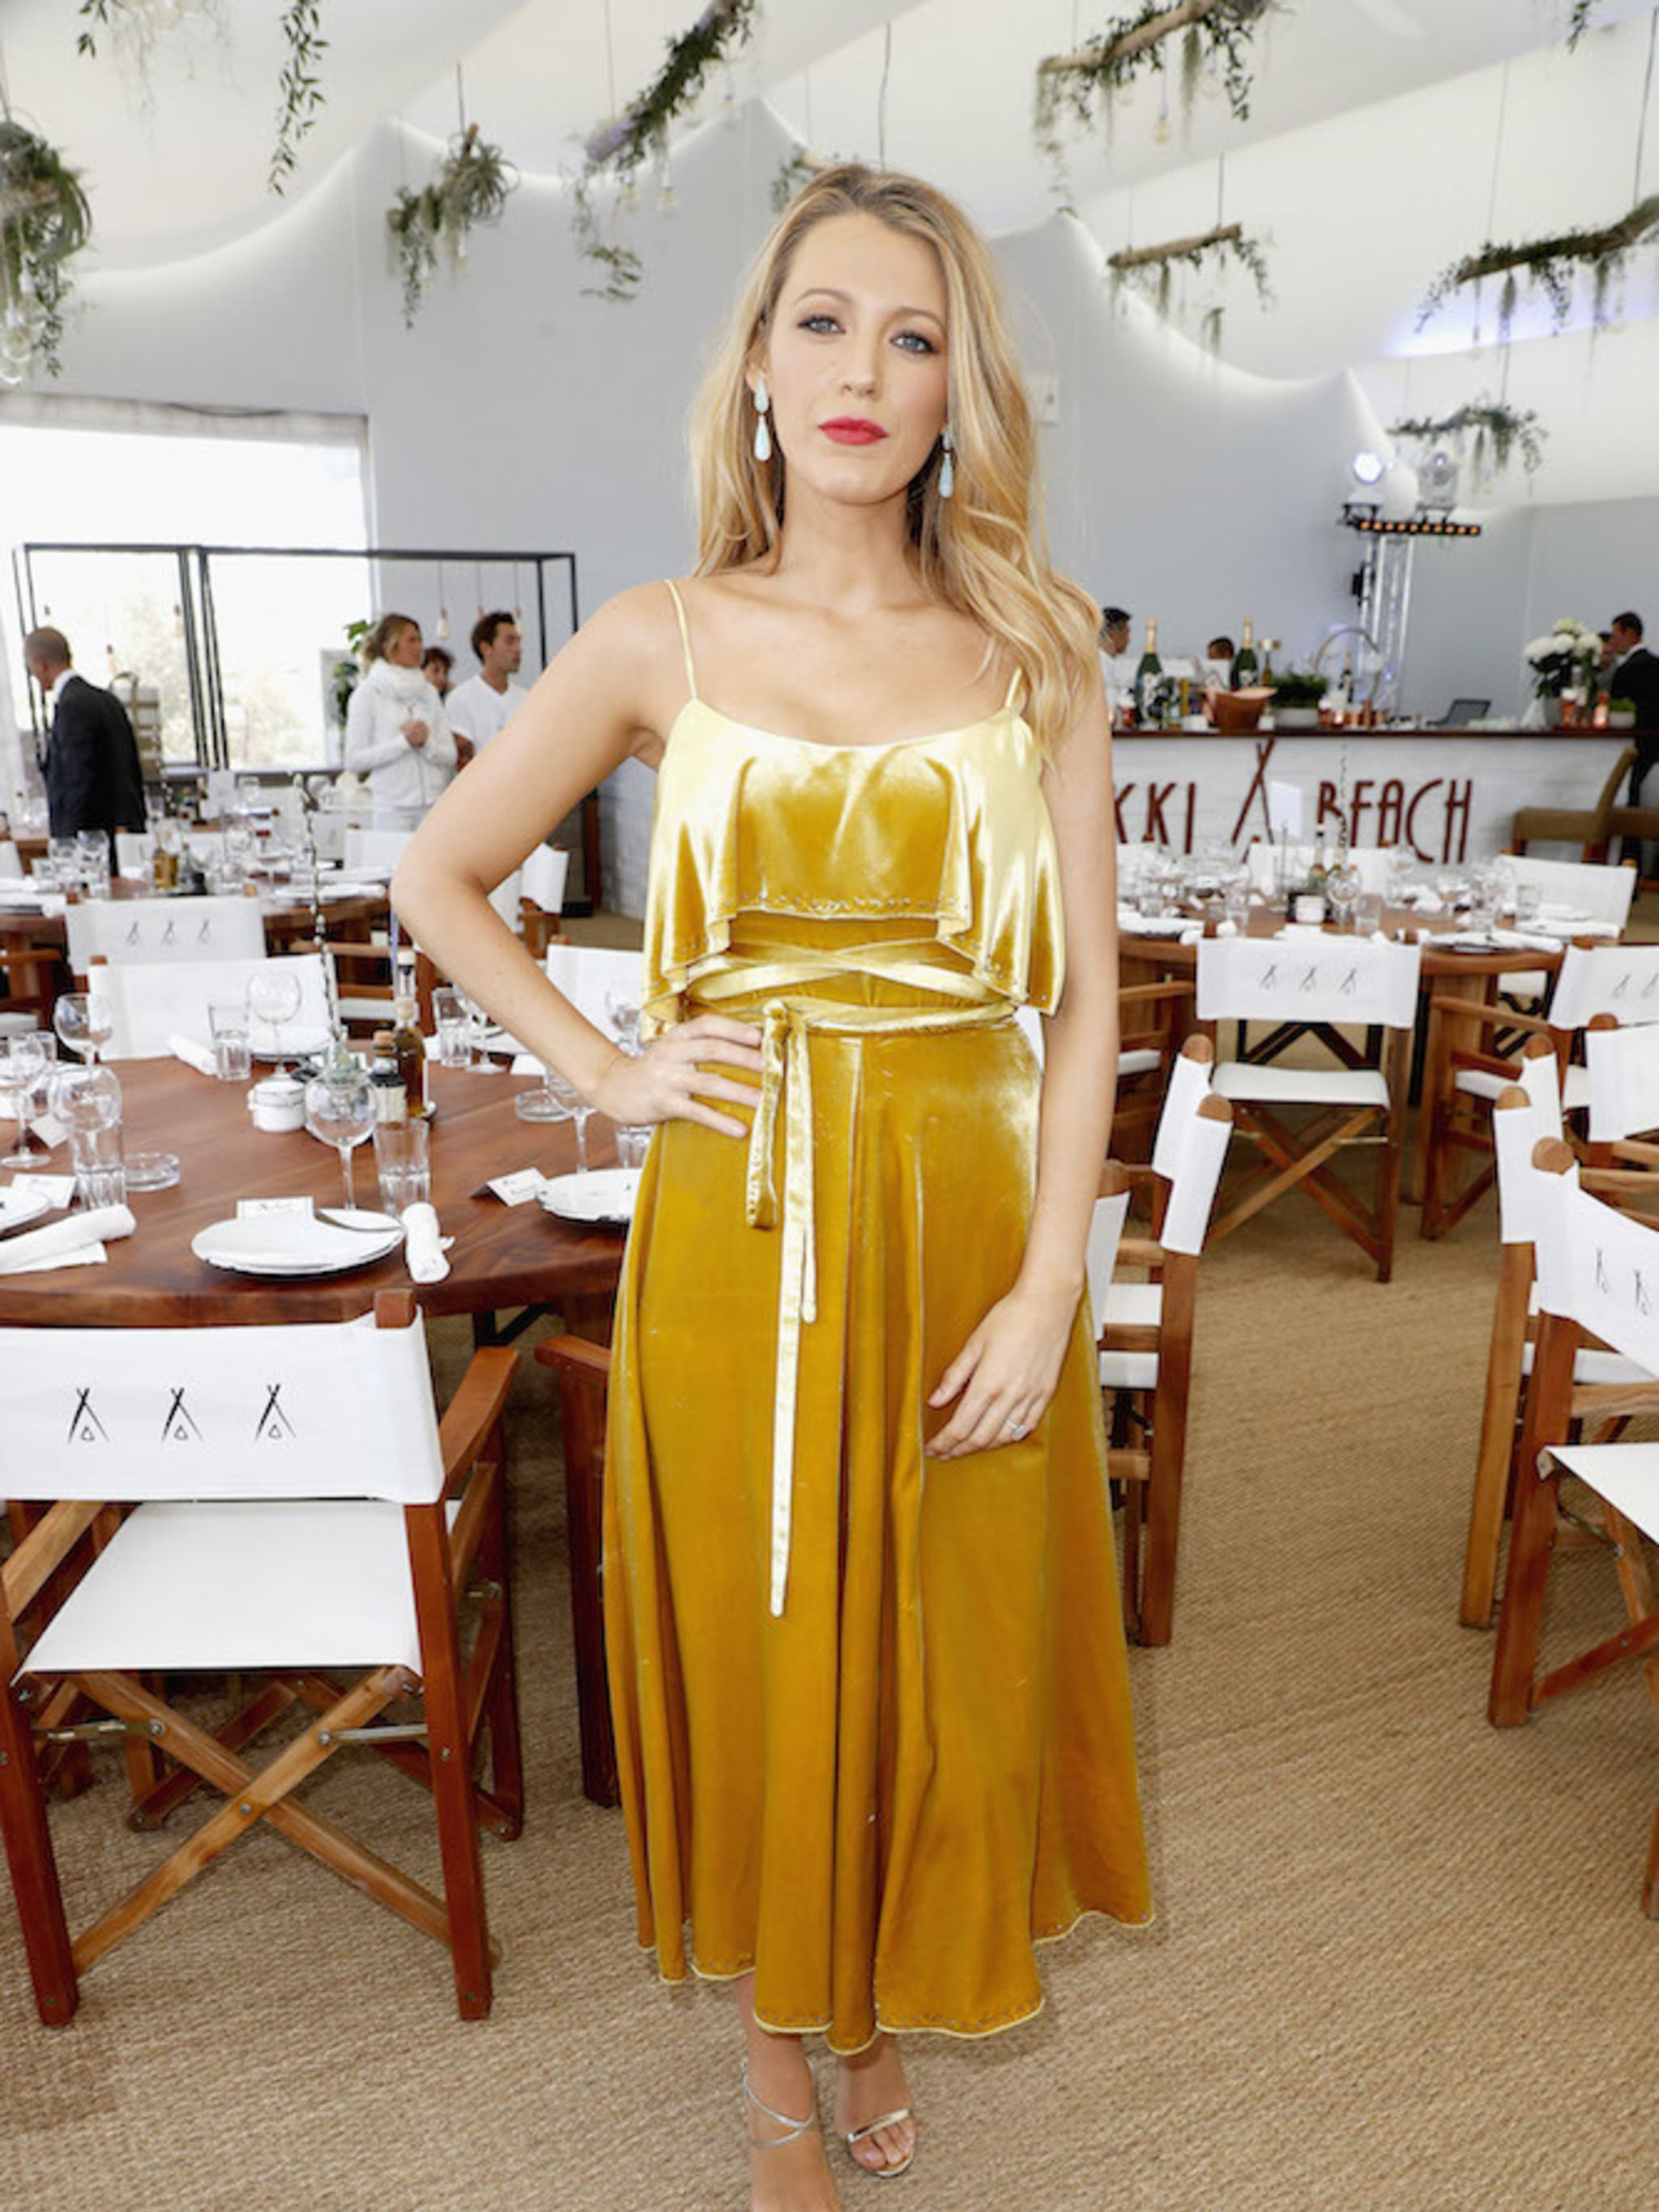 Forum on this topic: Get the Look: Blake Lively at the , get-the-look-blake-lively-at-the/